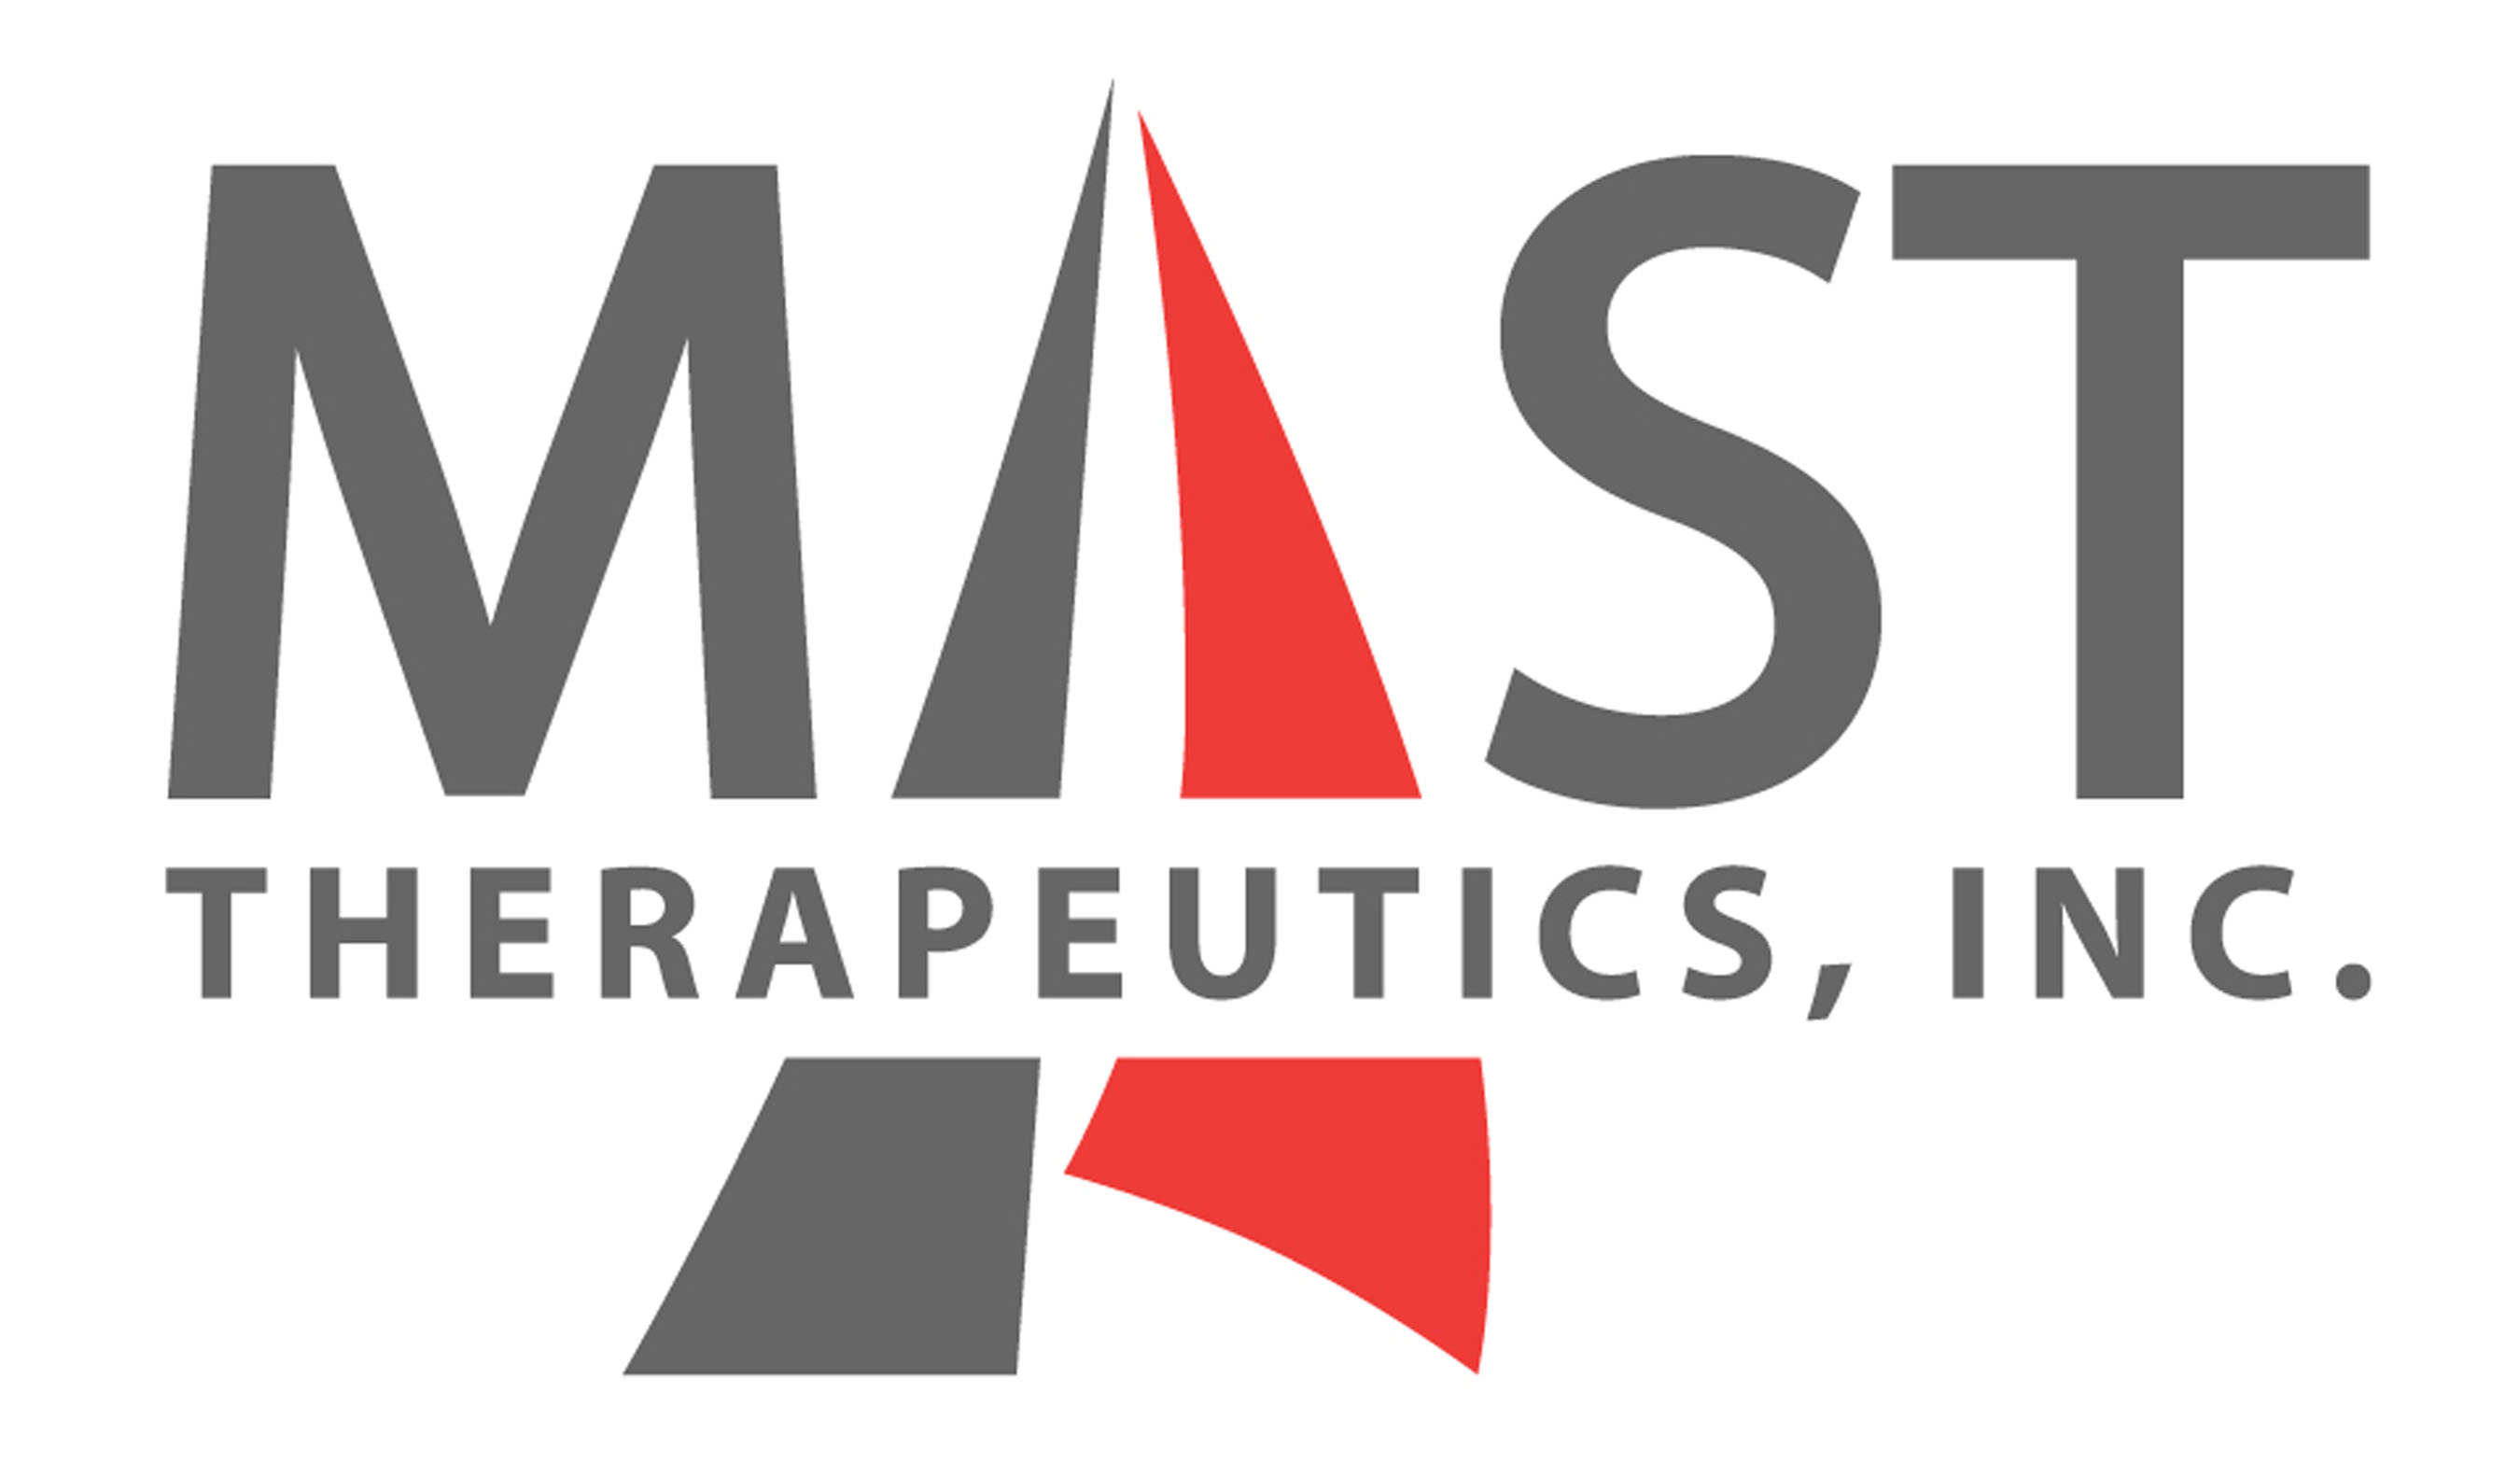 Mast Therapeutics Inc (NYSEMKT:MSTX) Begins Phase 2 Study Of Heart Failure Treatment